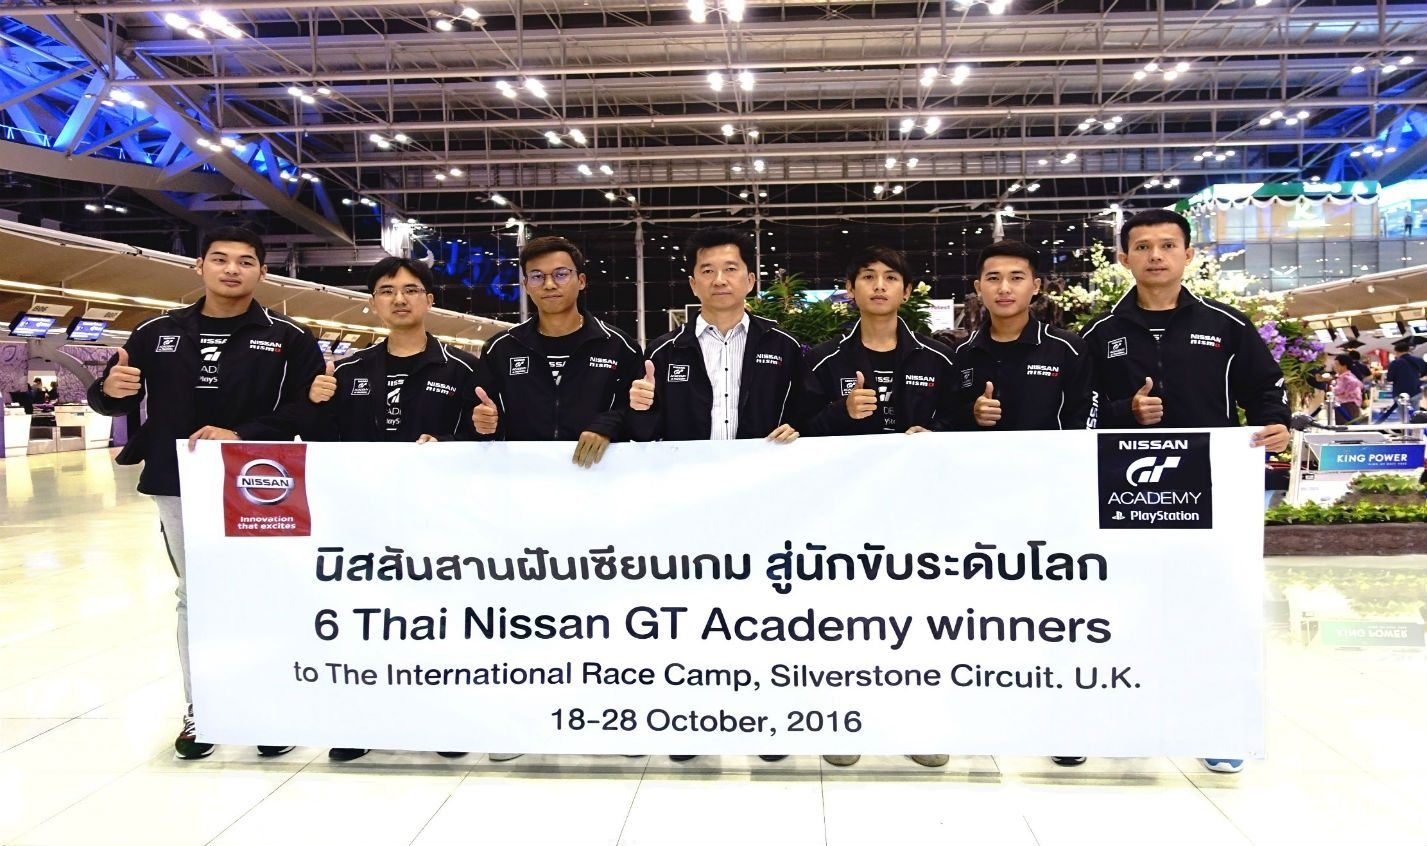 gt-academy-2016-race-camp